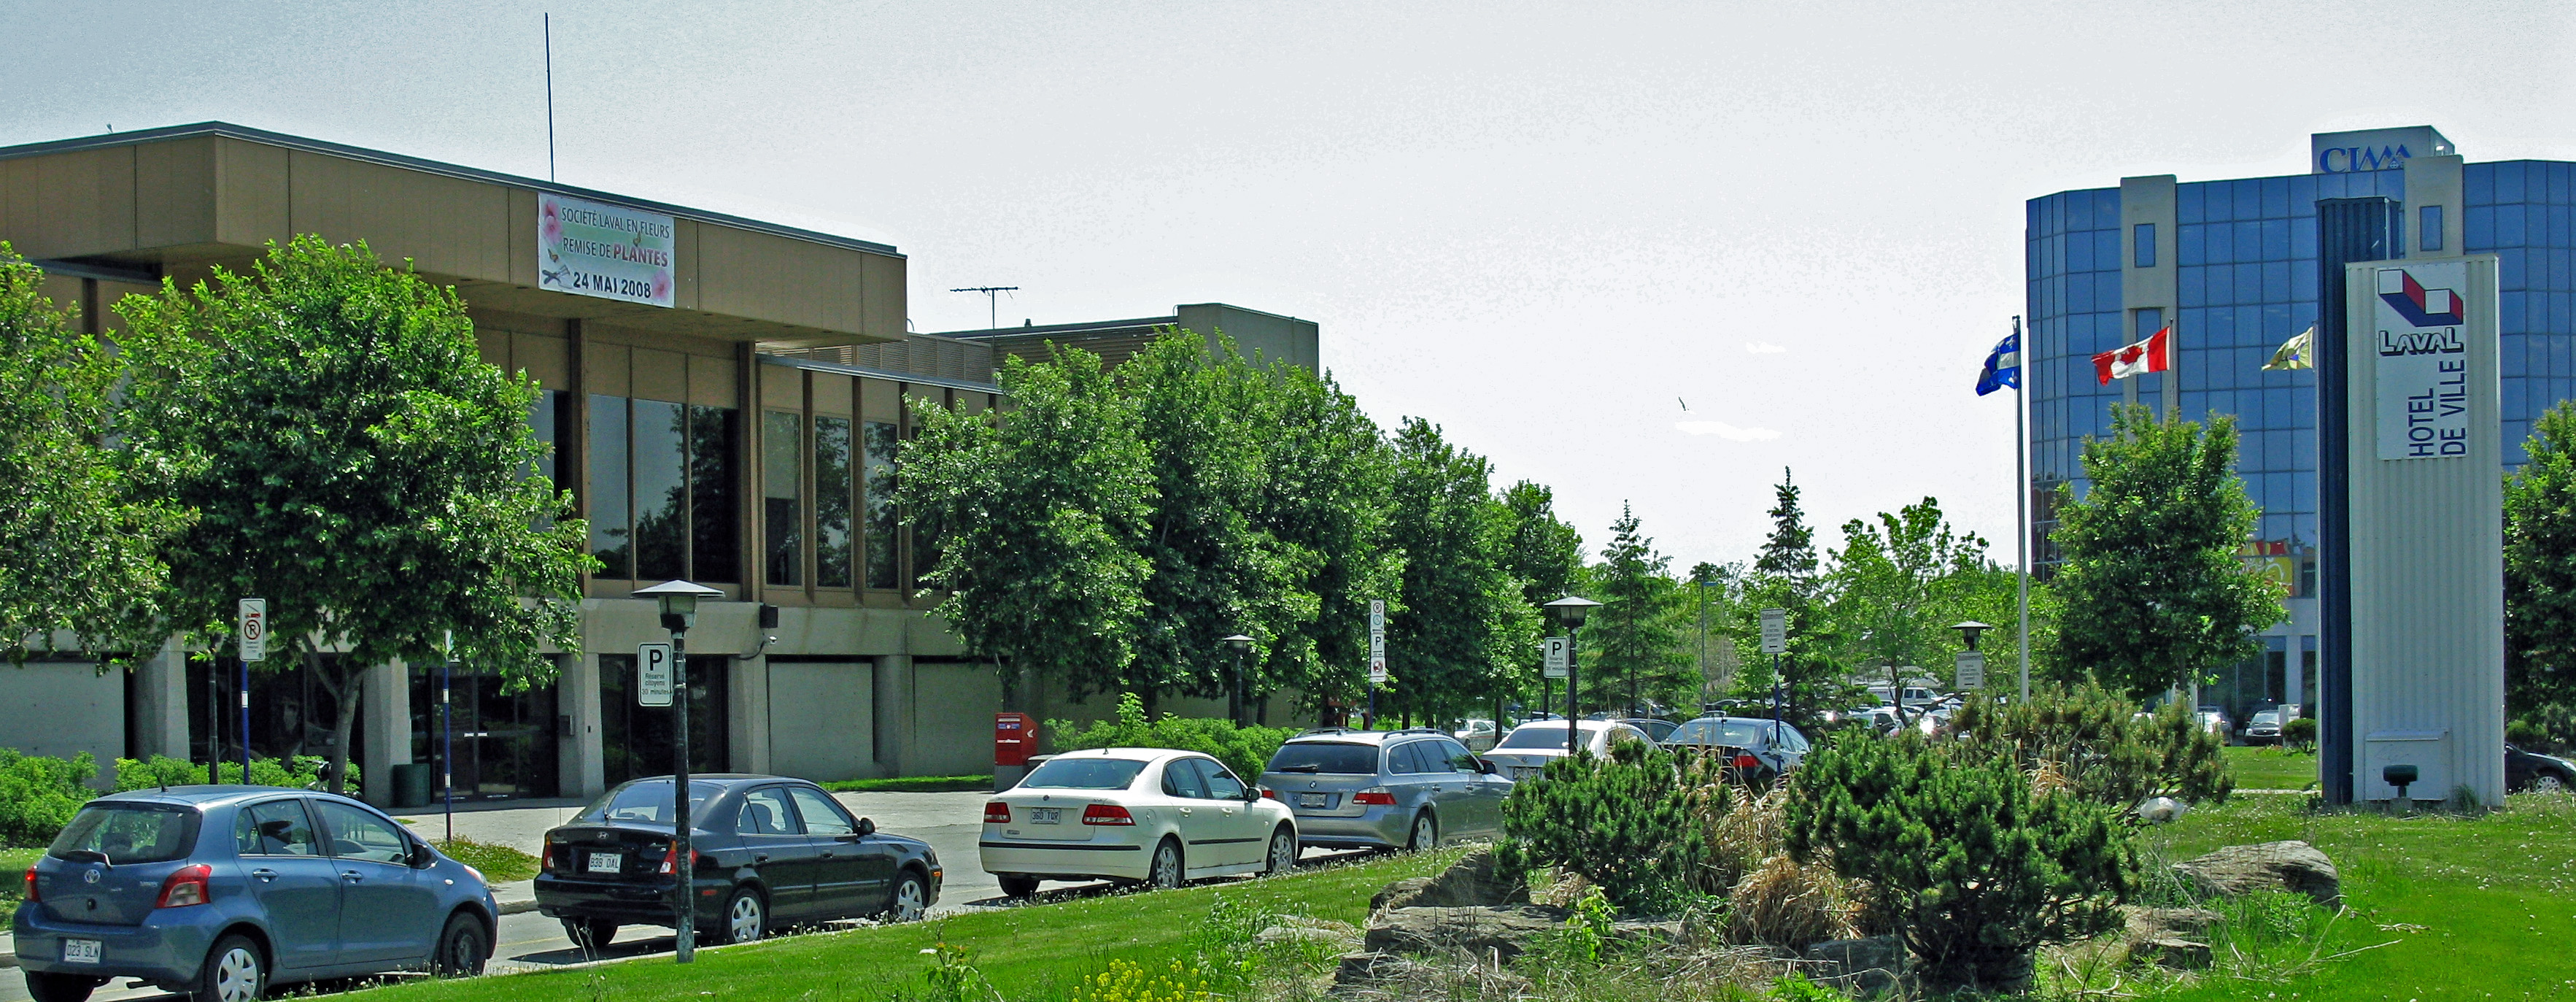 File laval city hall edited jpg wikimedia commons for Piscine laval